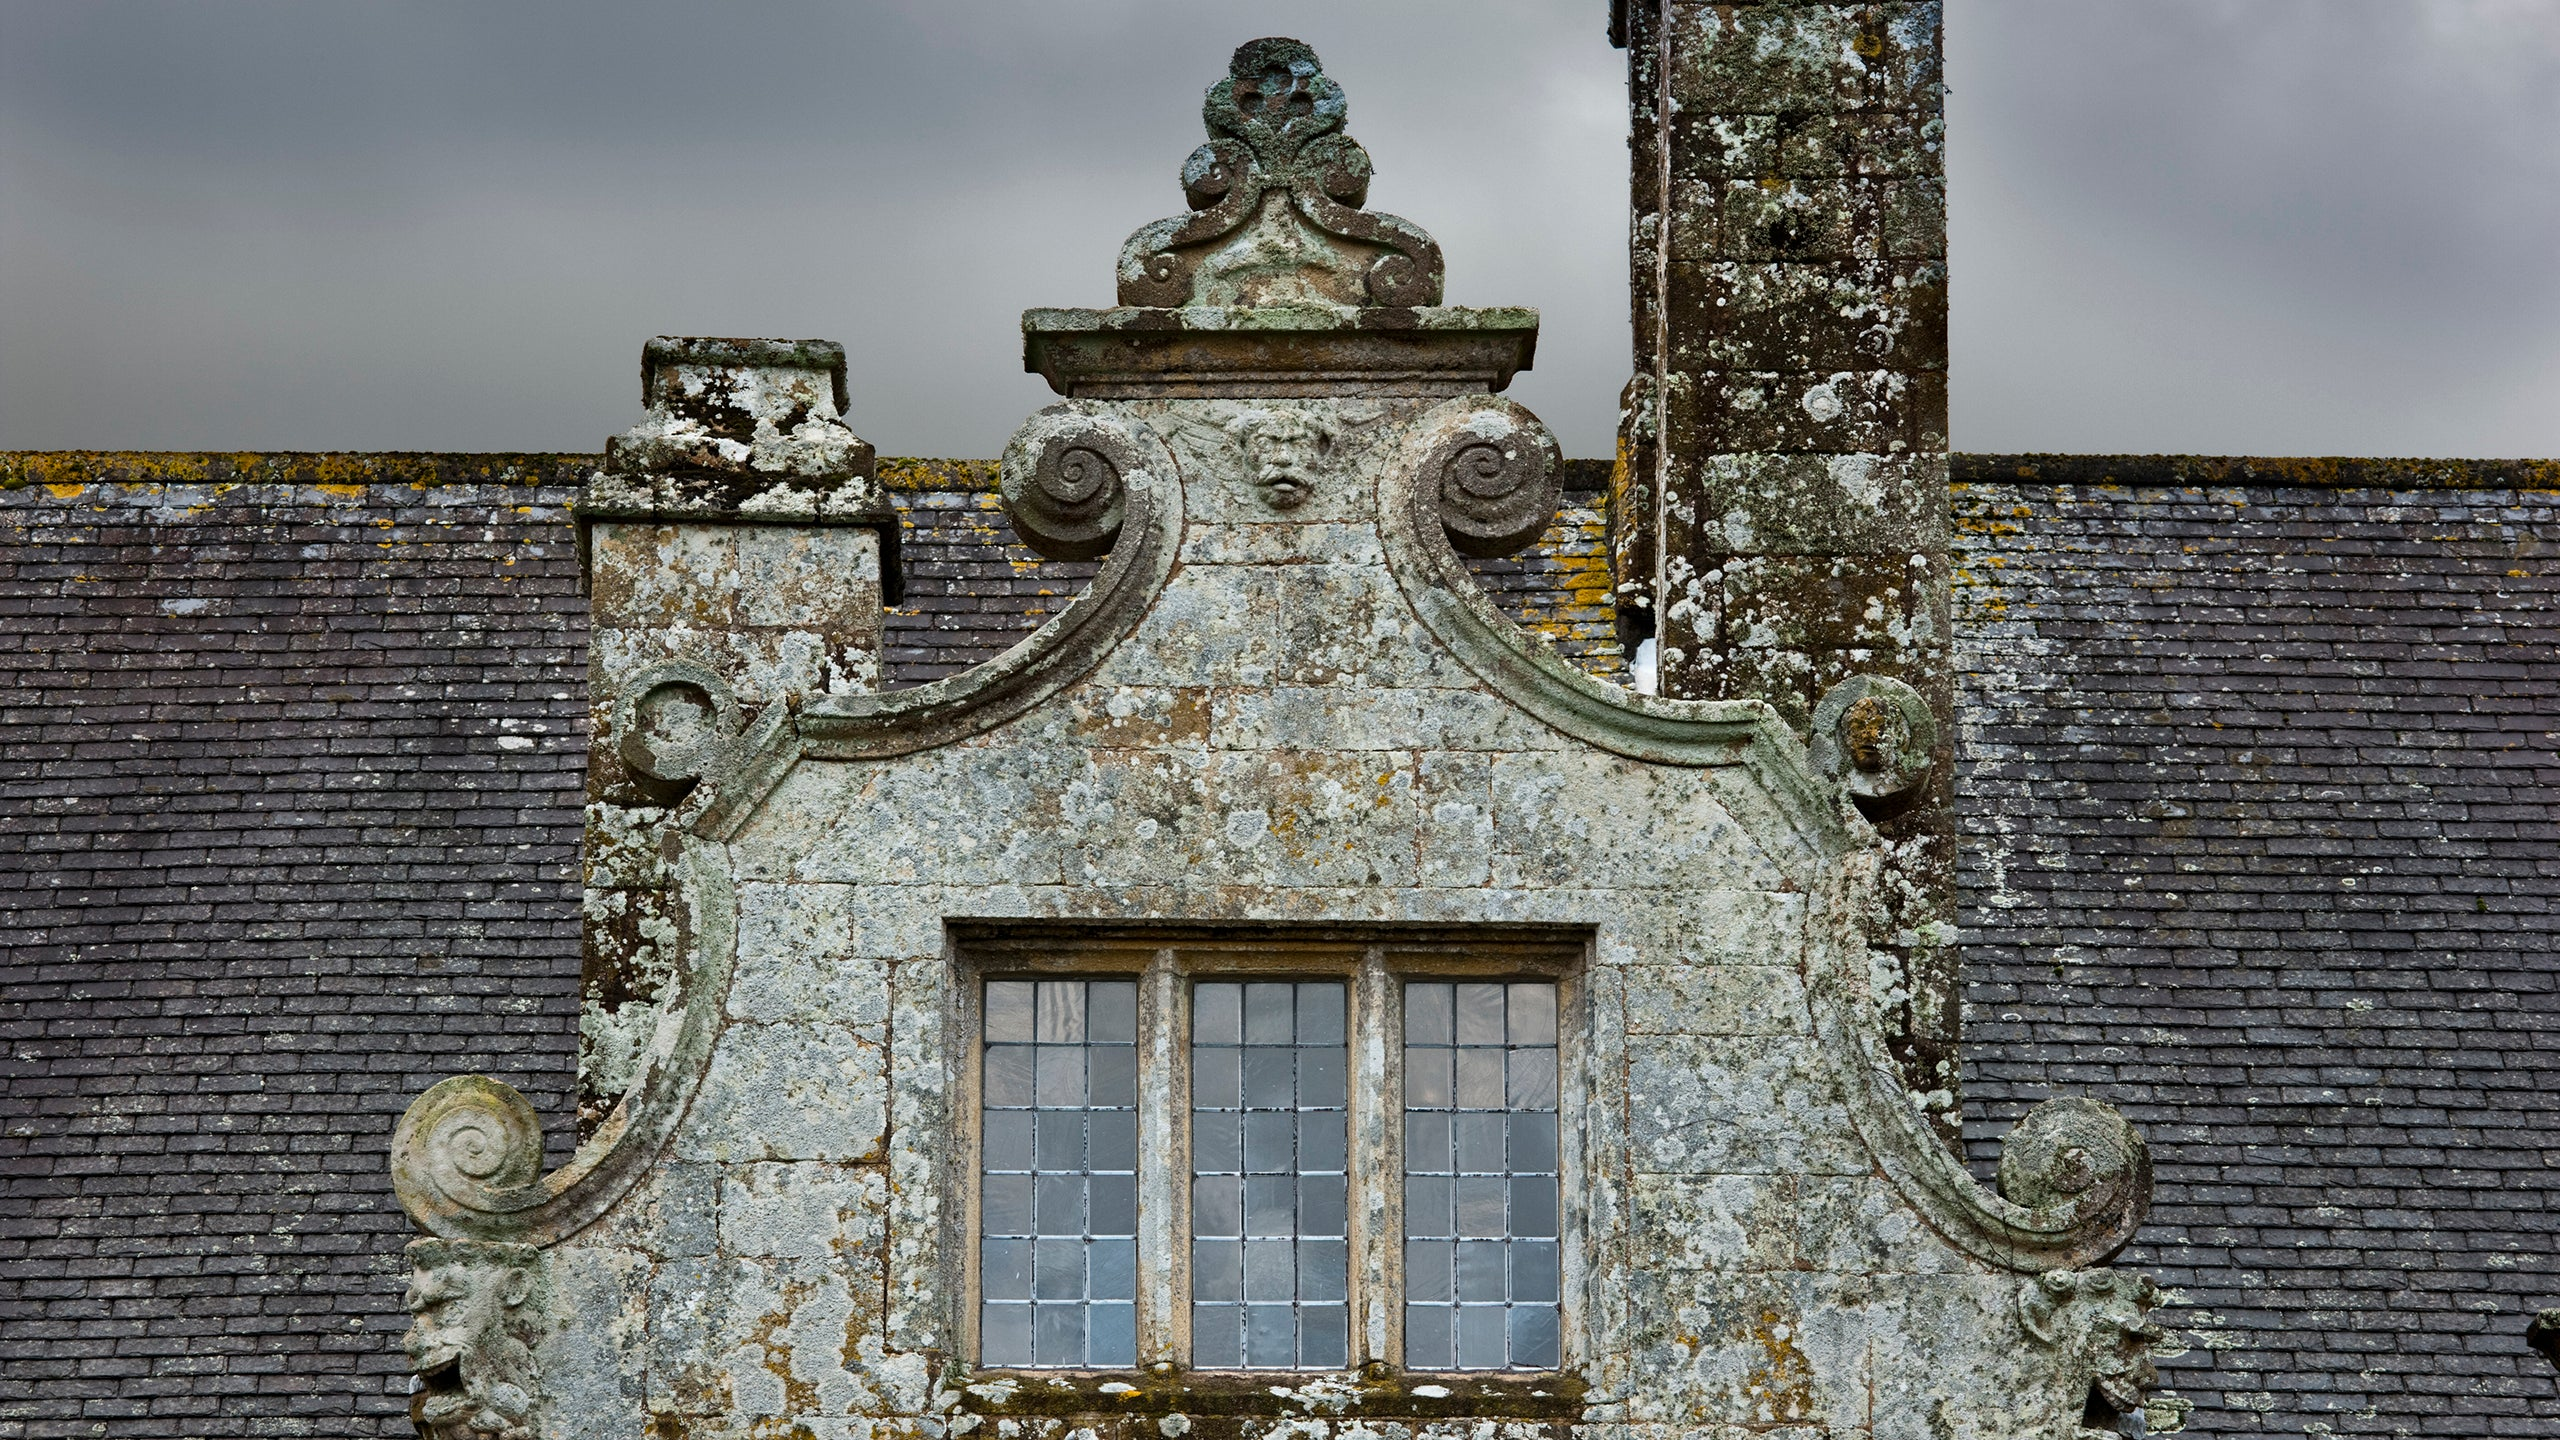 Detail of a Dutch-style gable on the east front at Trerice, Cornwall